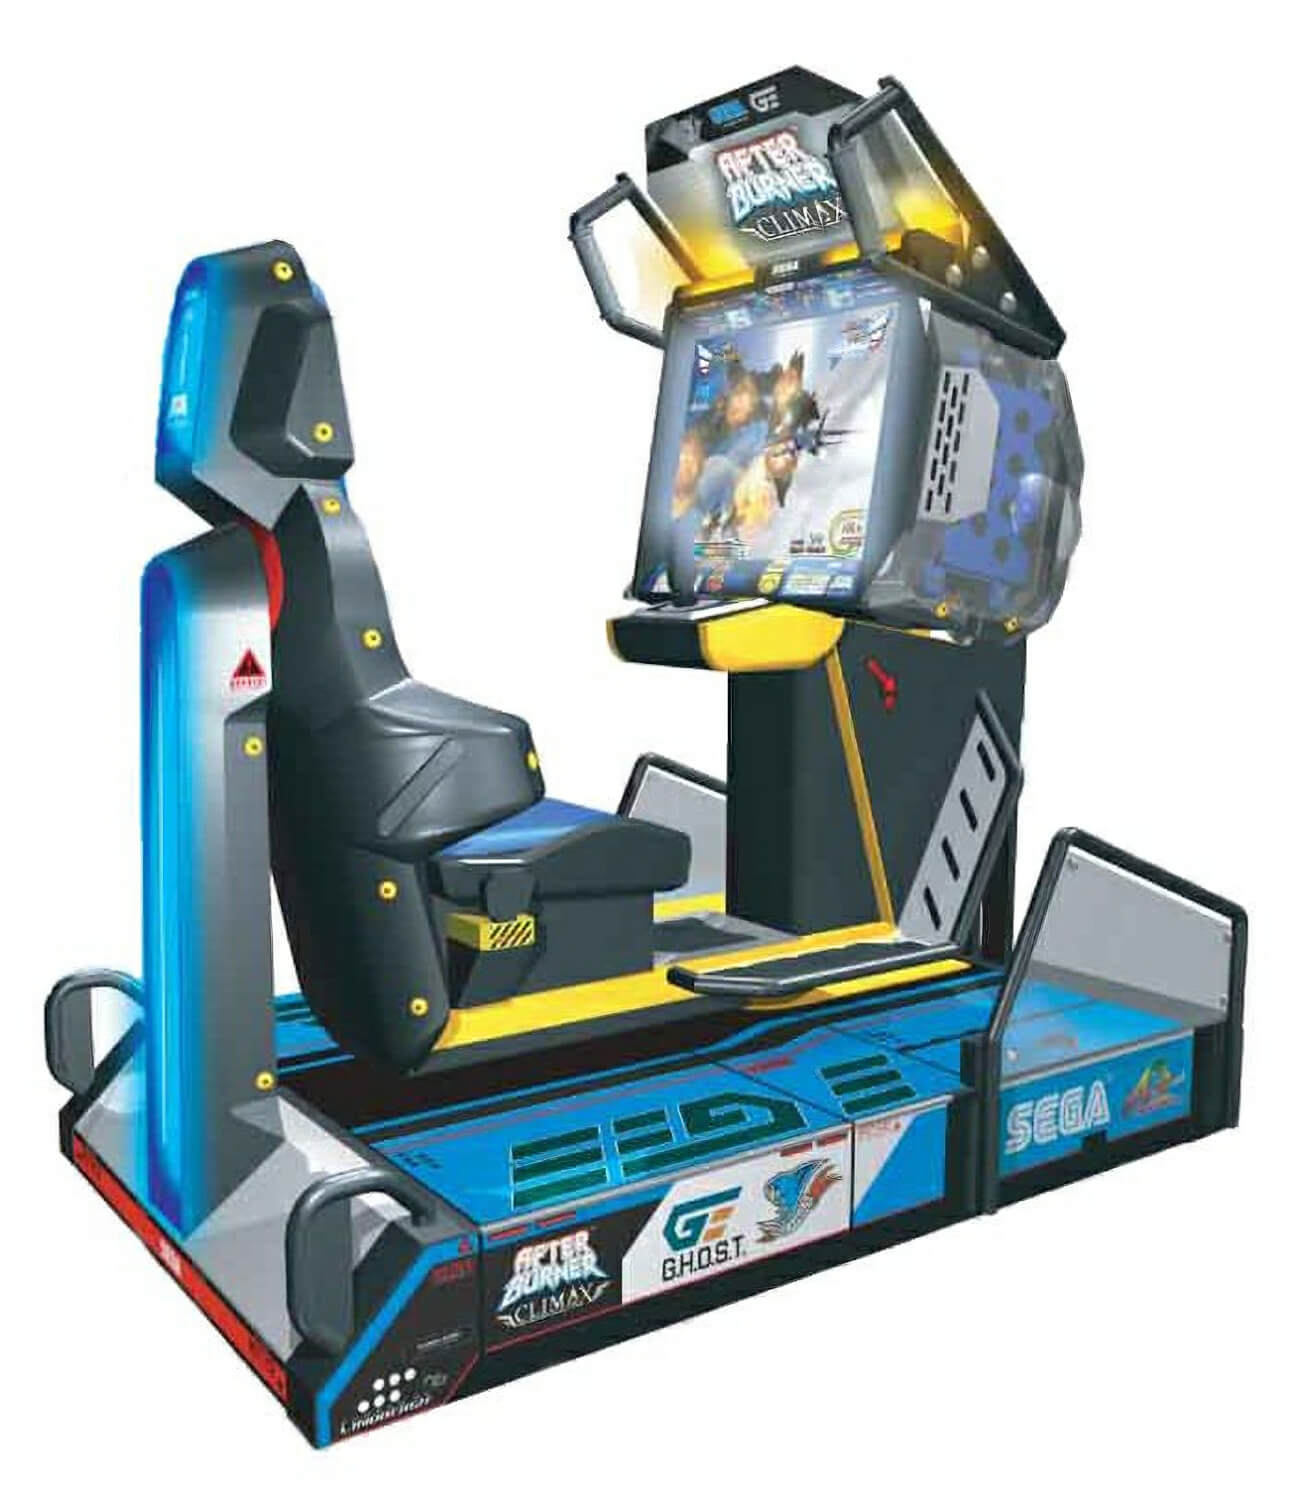 Hockey Tables For Sale Sega After Burner Climax Deluxe Arcade Machine | Liberty Games